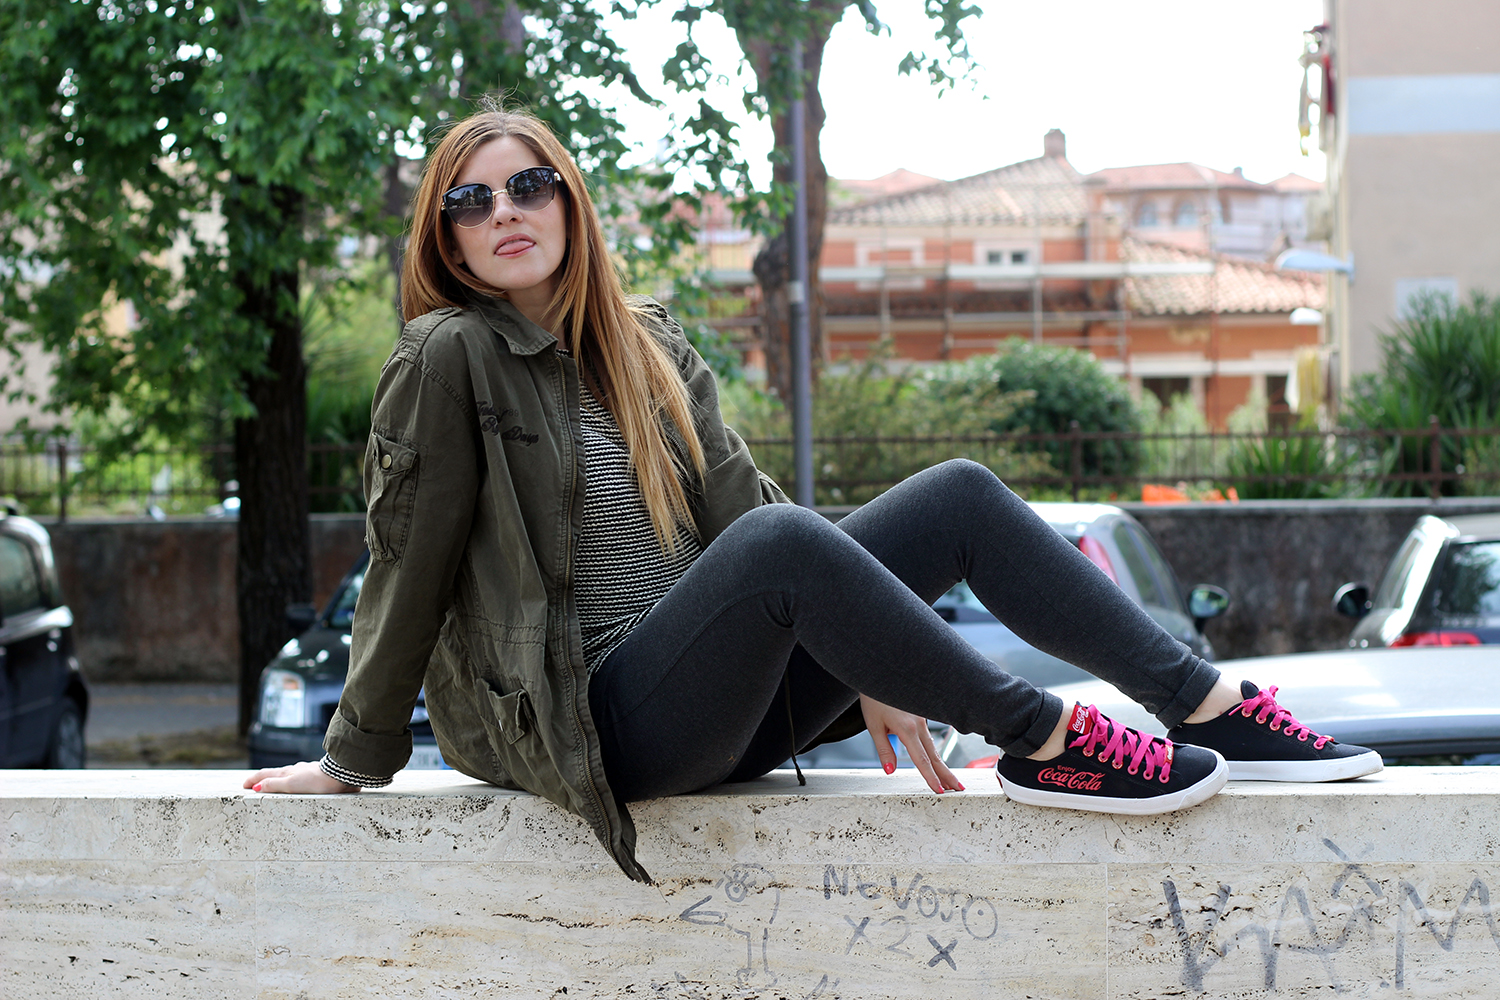 ELISABETTA BERTOLINI FASHION BLOGGER LOOK MILITARY STYLE COCACOLA SHOES GARABATELLA ROMA